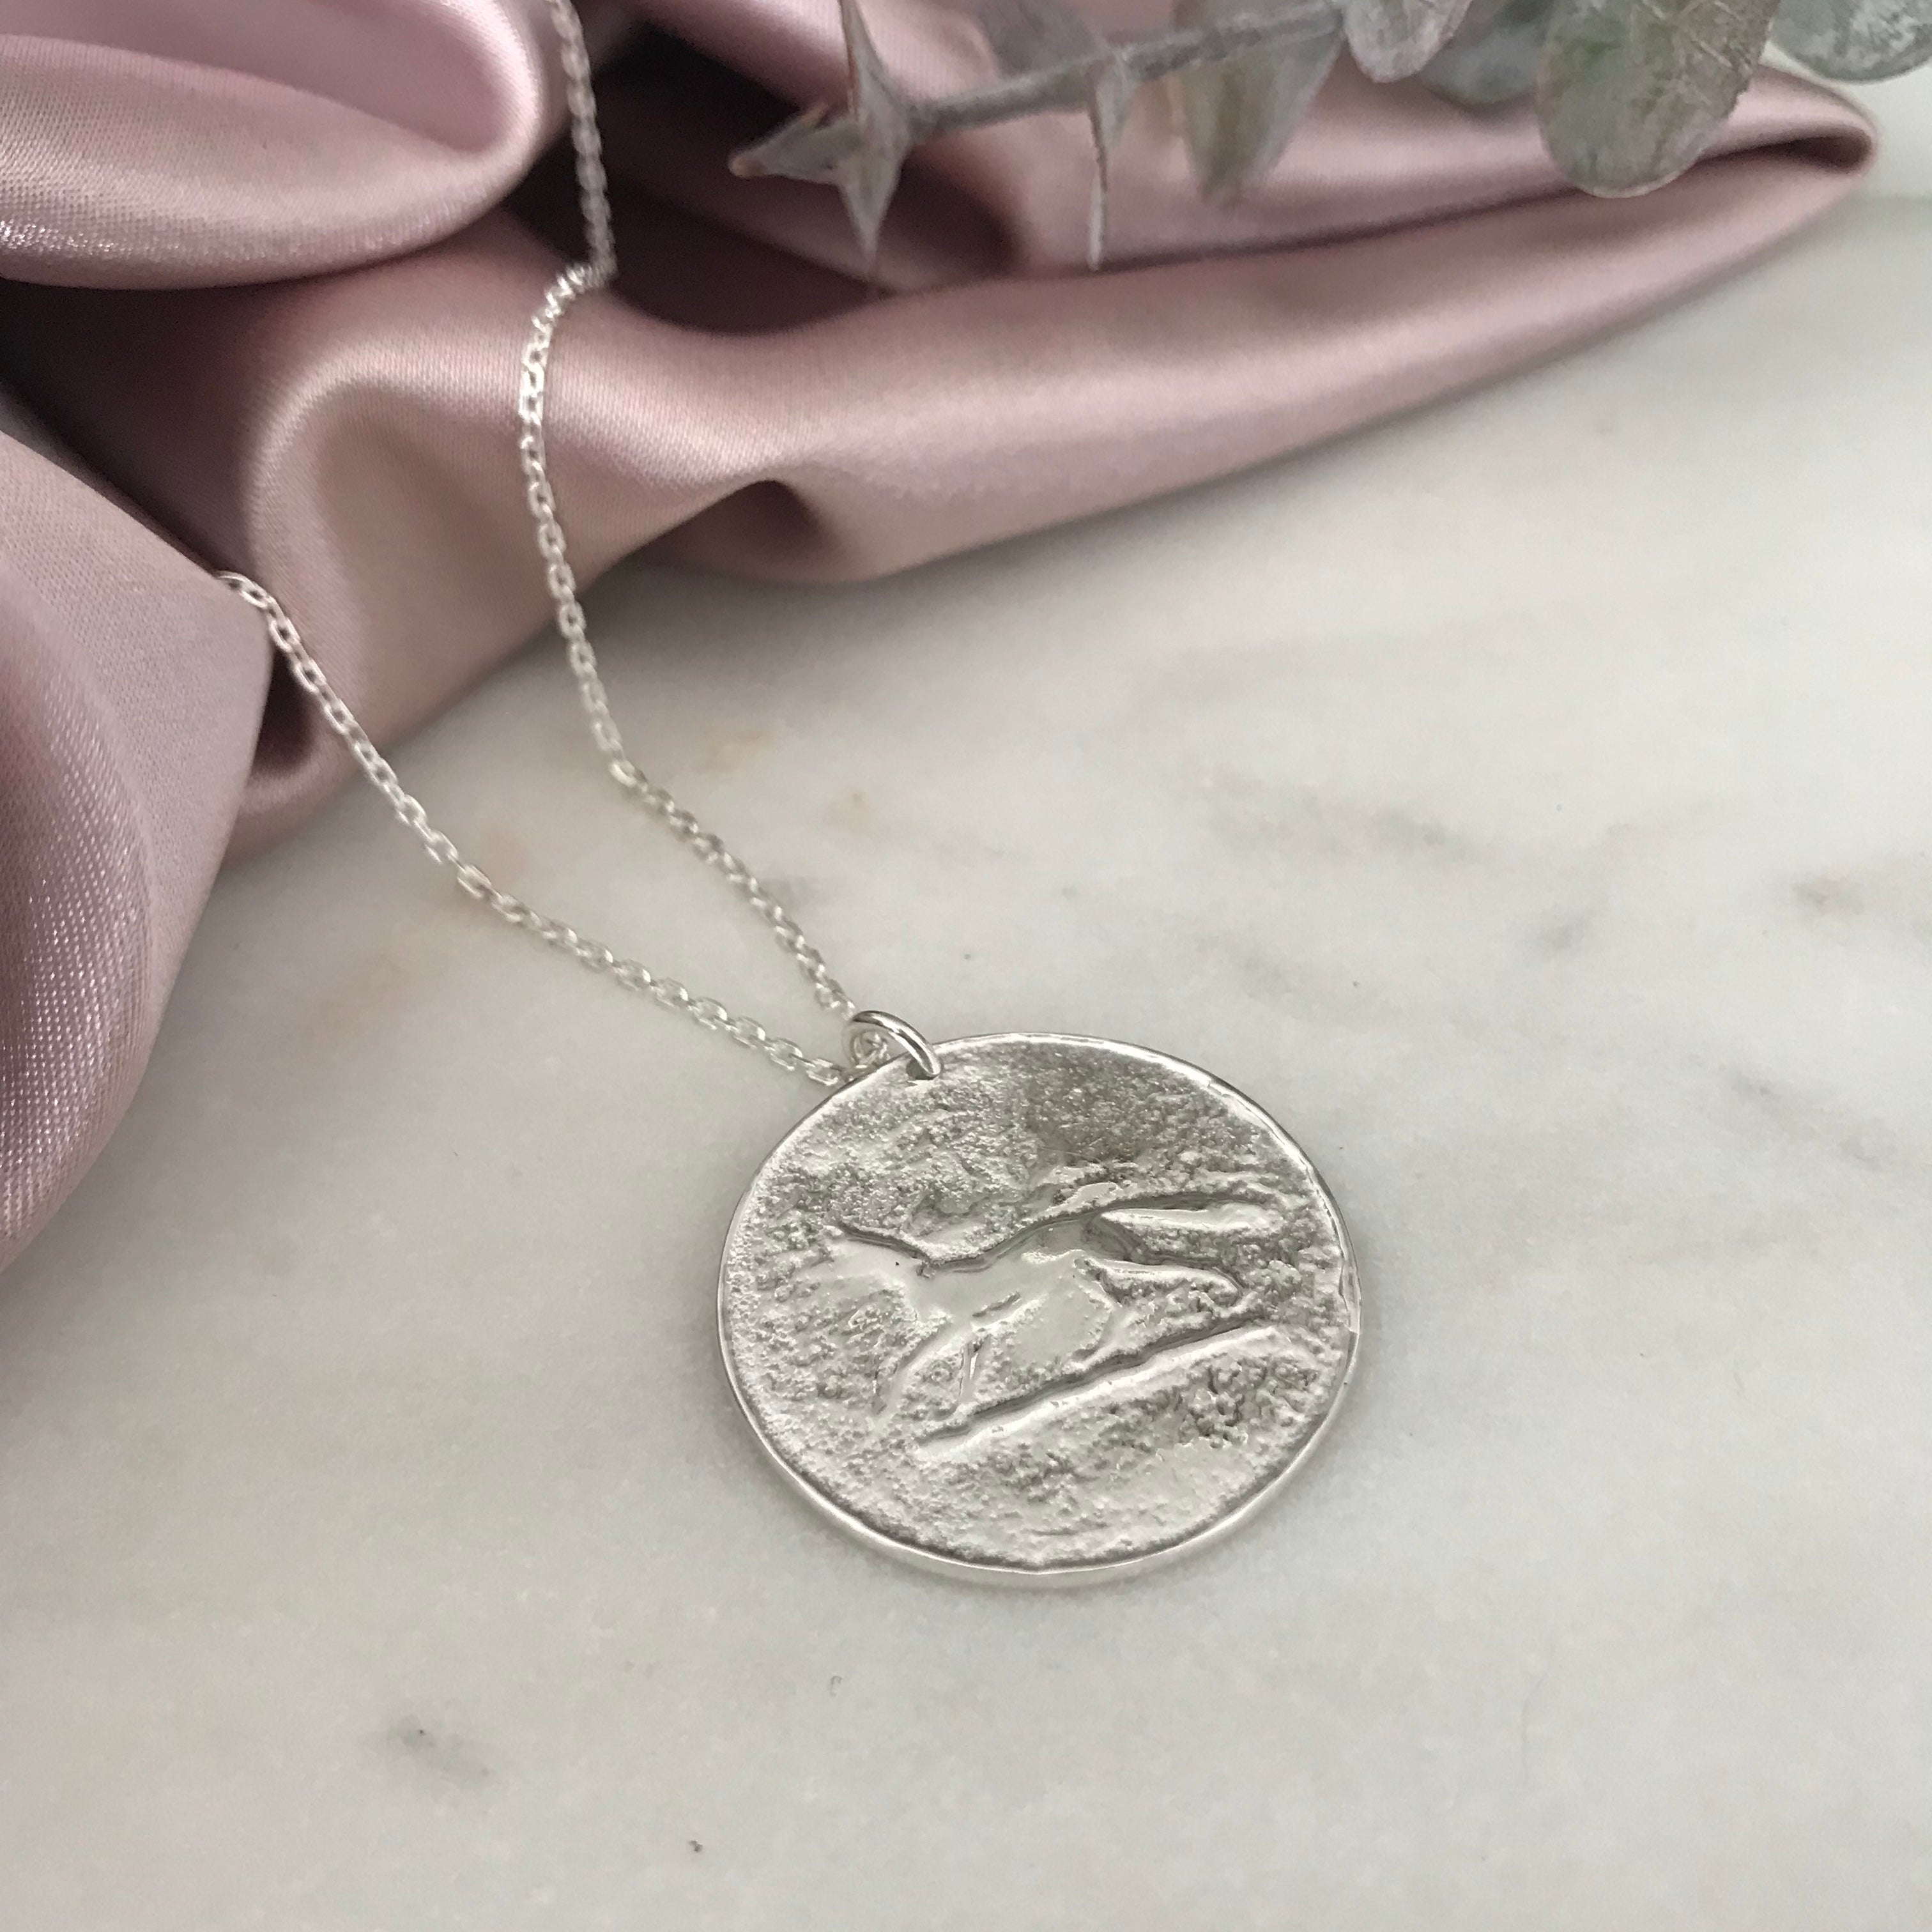 Silver Fox Coin Necklace by Pearl & Queenie